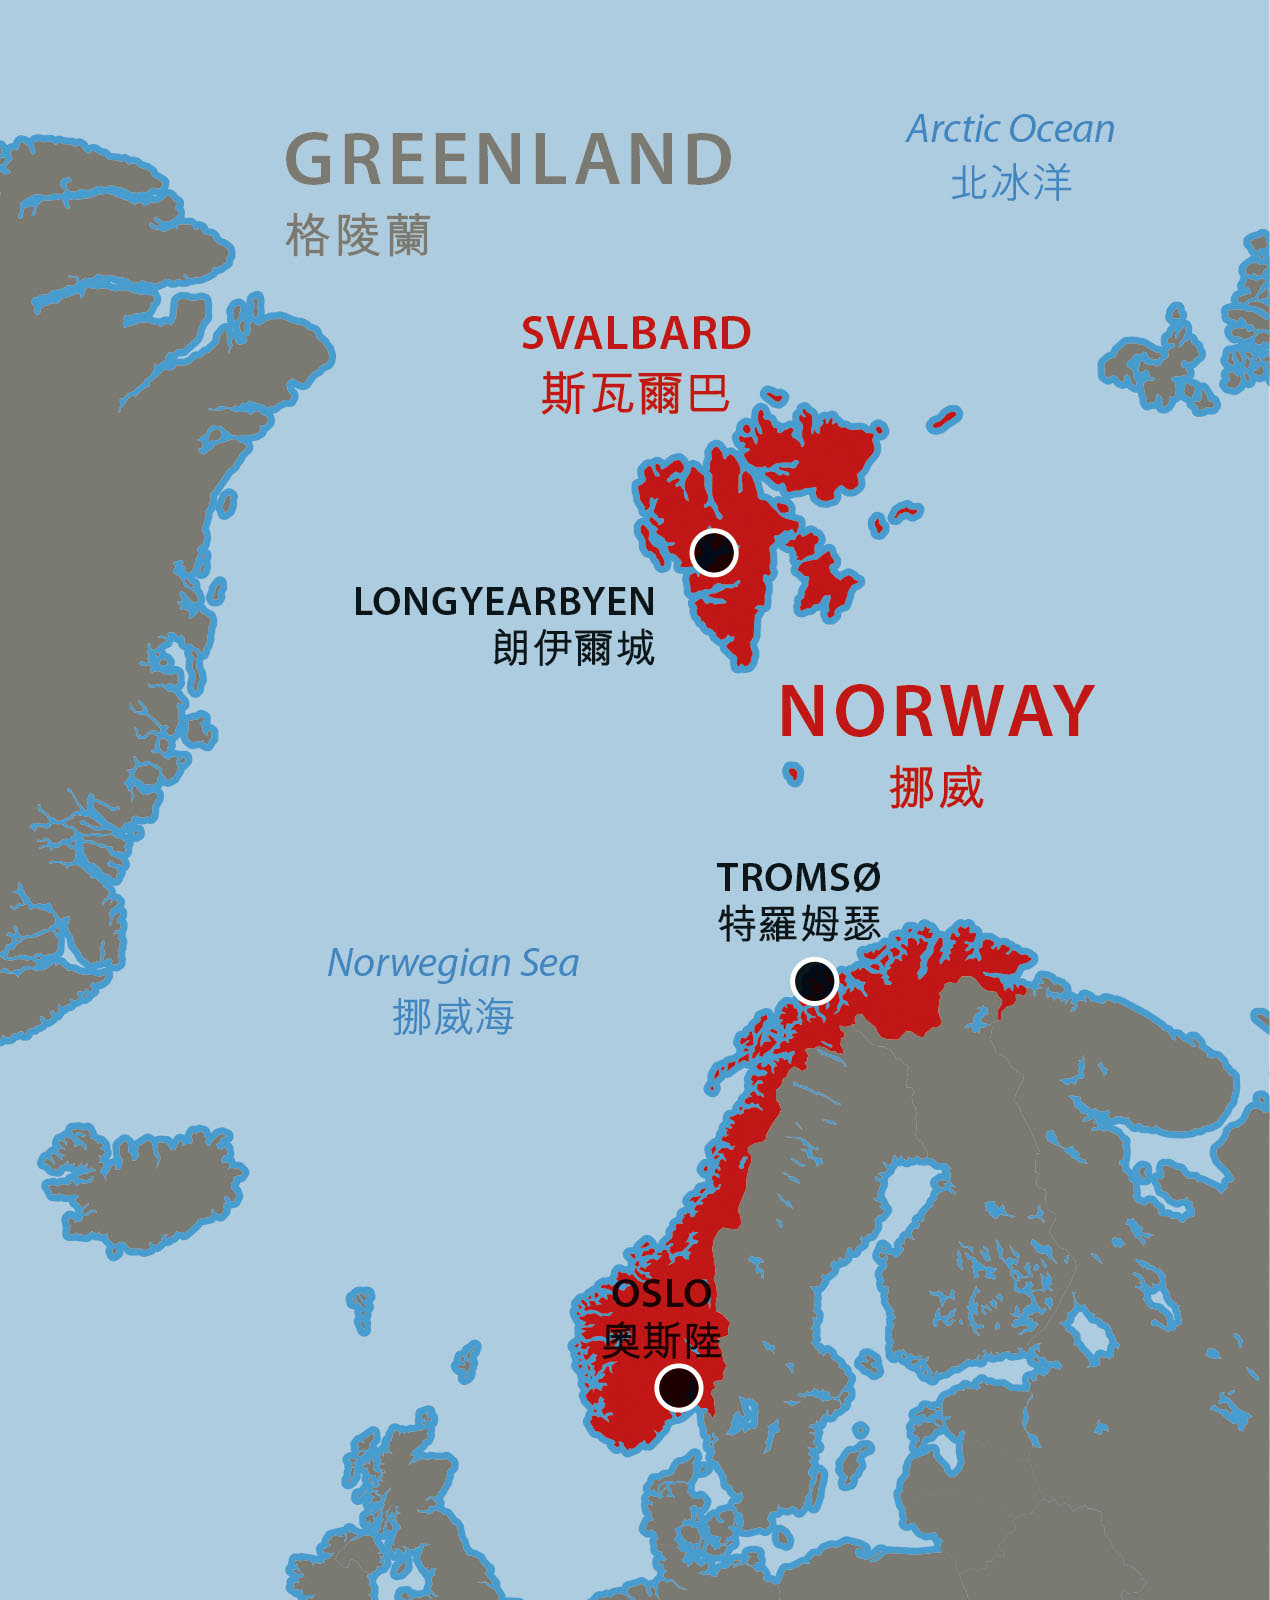 http://discovery.cathaypacific.com/wp-content/uploads/2017/01/svalbard-map.jpg